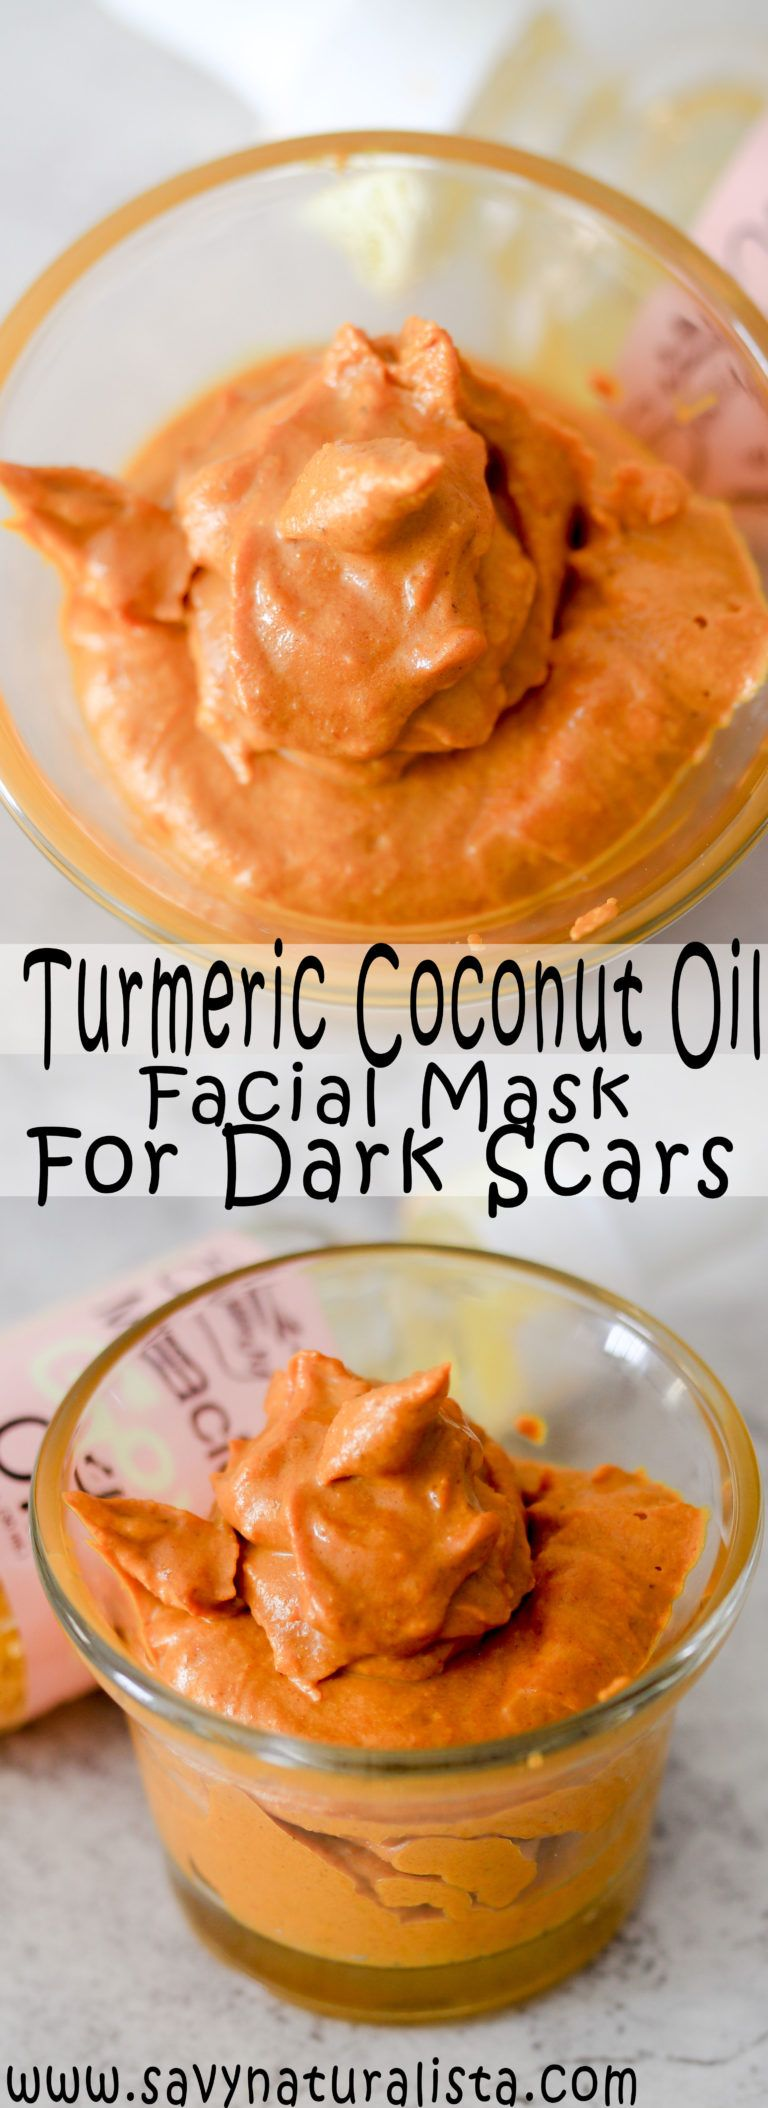 This turmeric coconut oil mask is known for getting rid of dark scares well after one week let's see if we can get results! #turmericpowder #coconutoil #skincare #facialmask